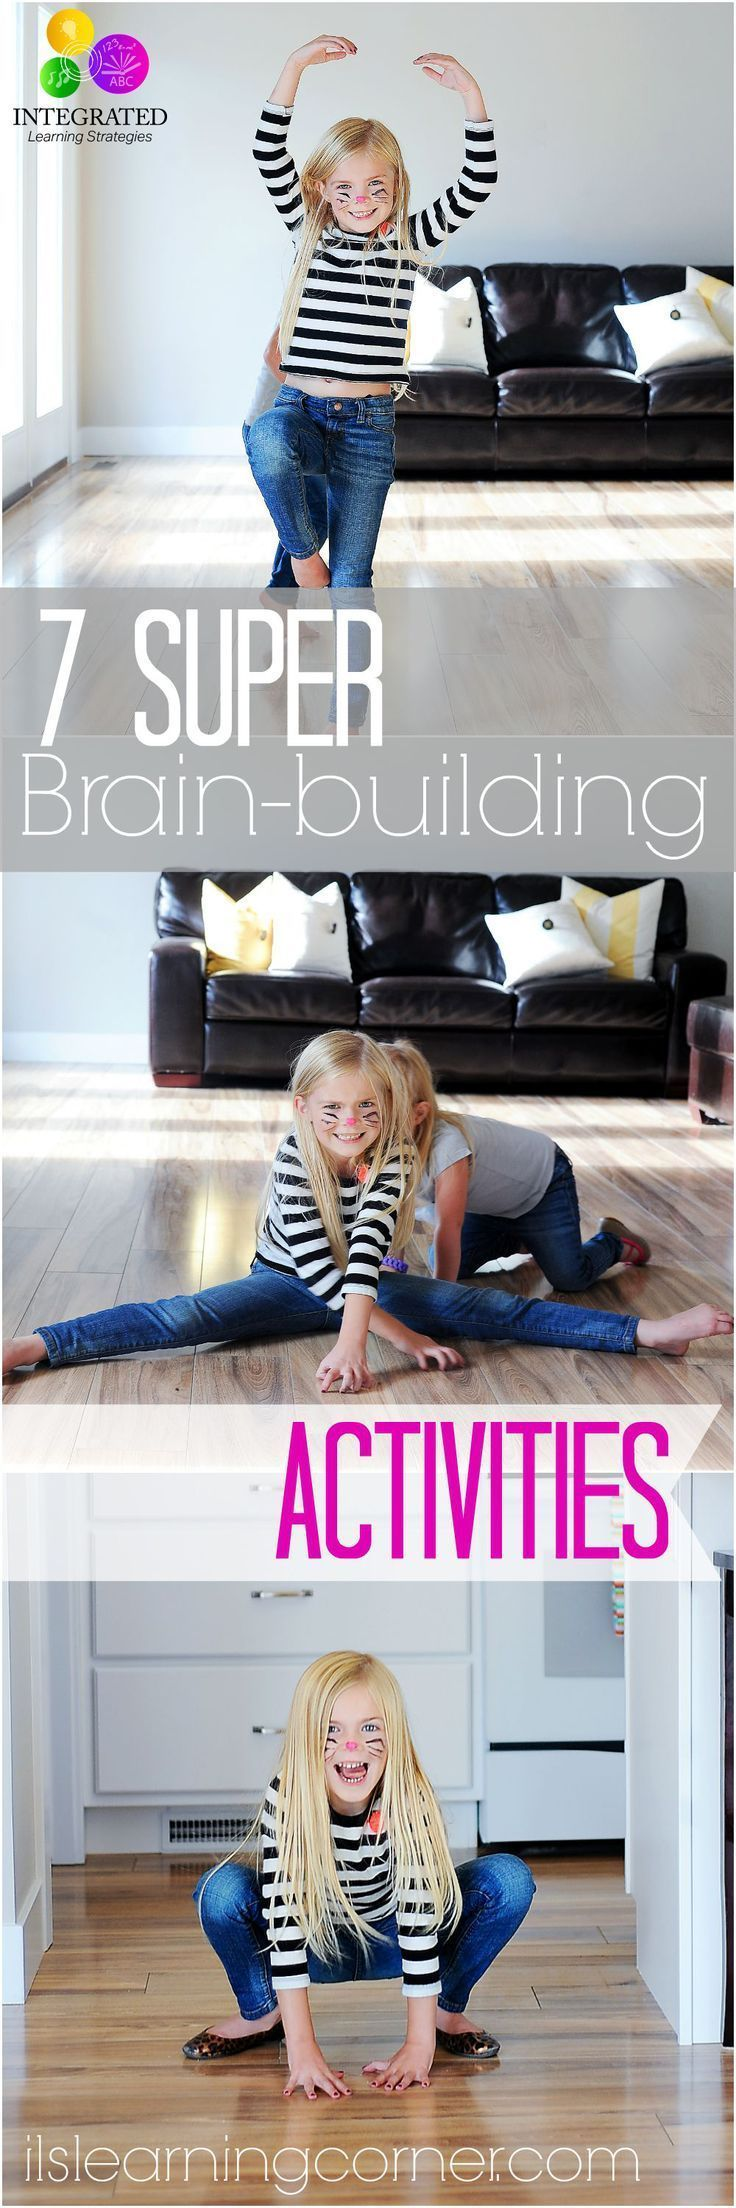 7 Super Brain-building Gross Motor Activities for Kids | ilslearningcorner.com